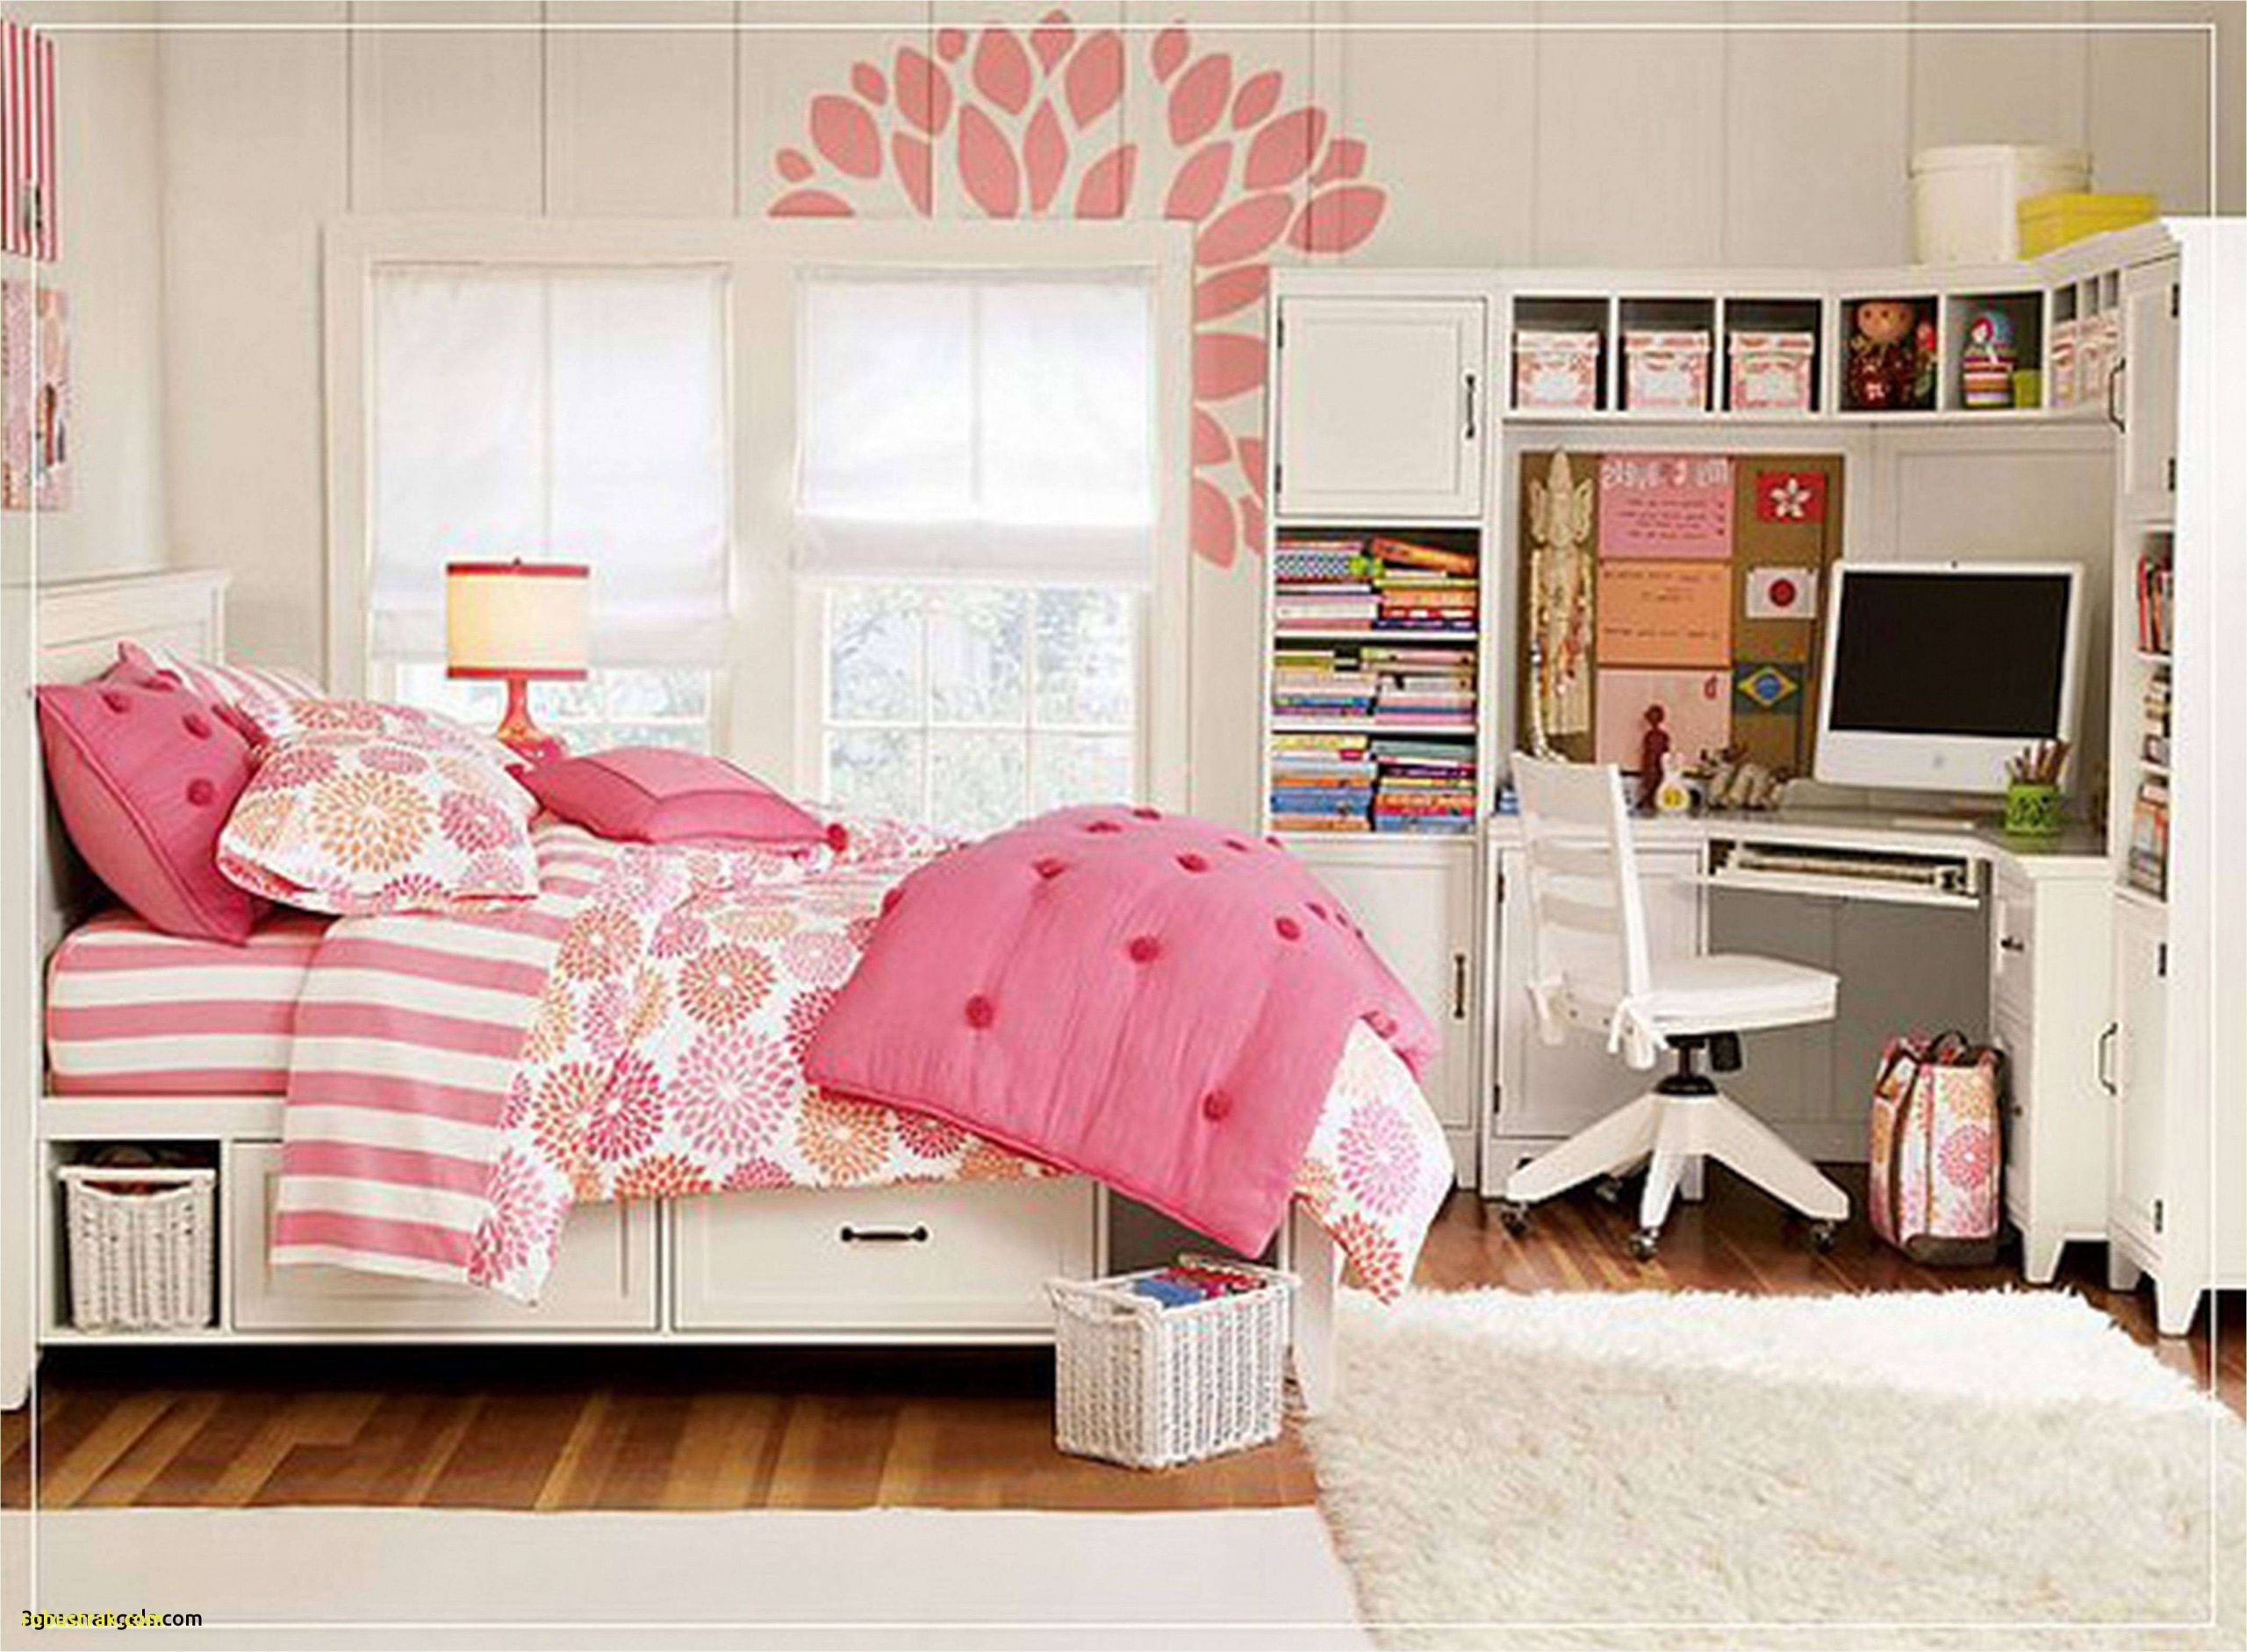 Teen Girl Bedroom Inspirational Full Size Of Bedroom Ideas Girls Bedroom Furniture